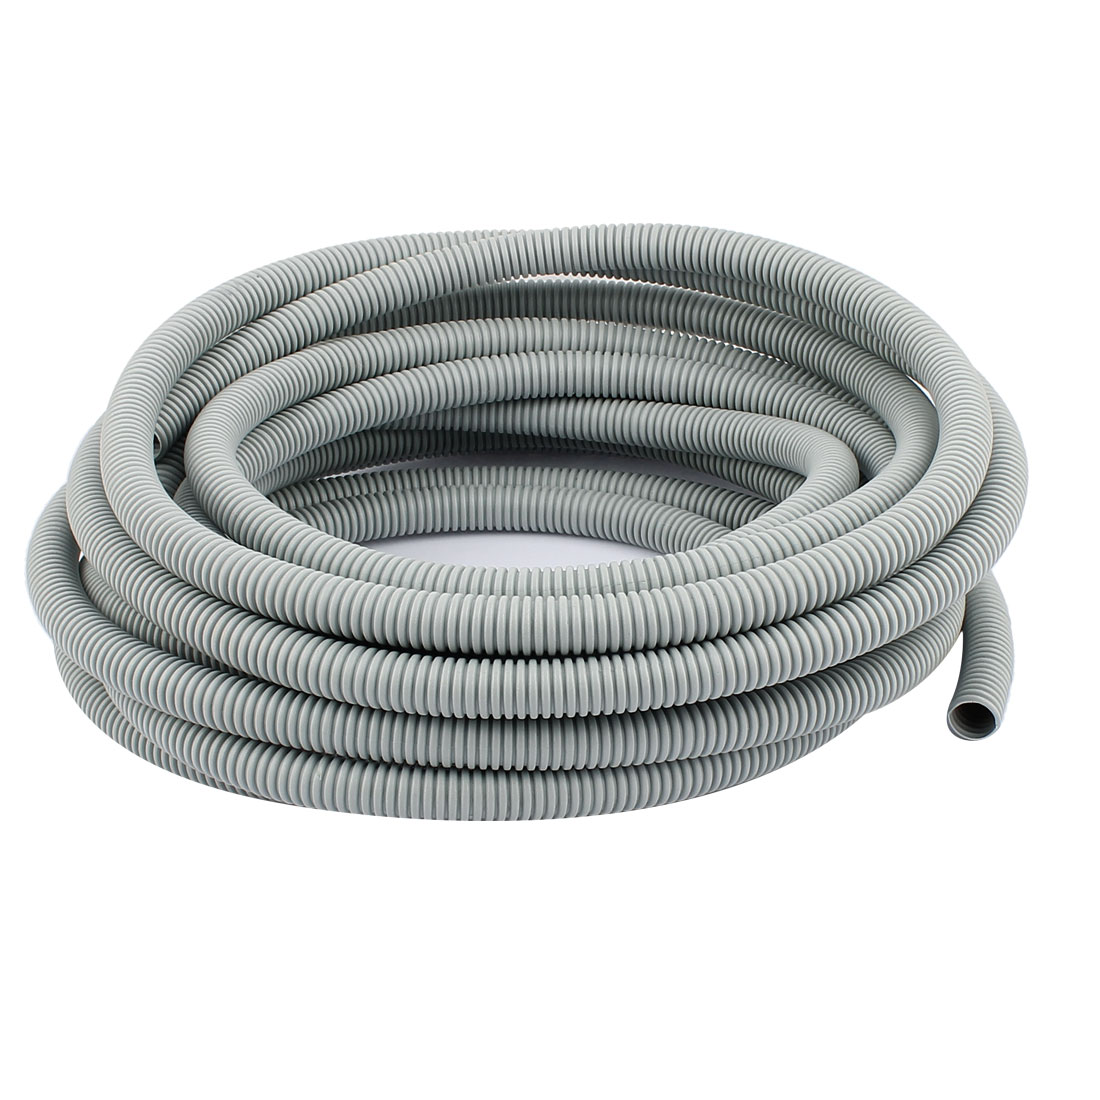 8 Meter Plastic Corrugated Tube Electric Conduit Pipe Gray 12x16MM